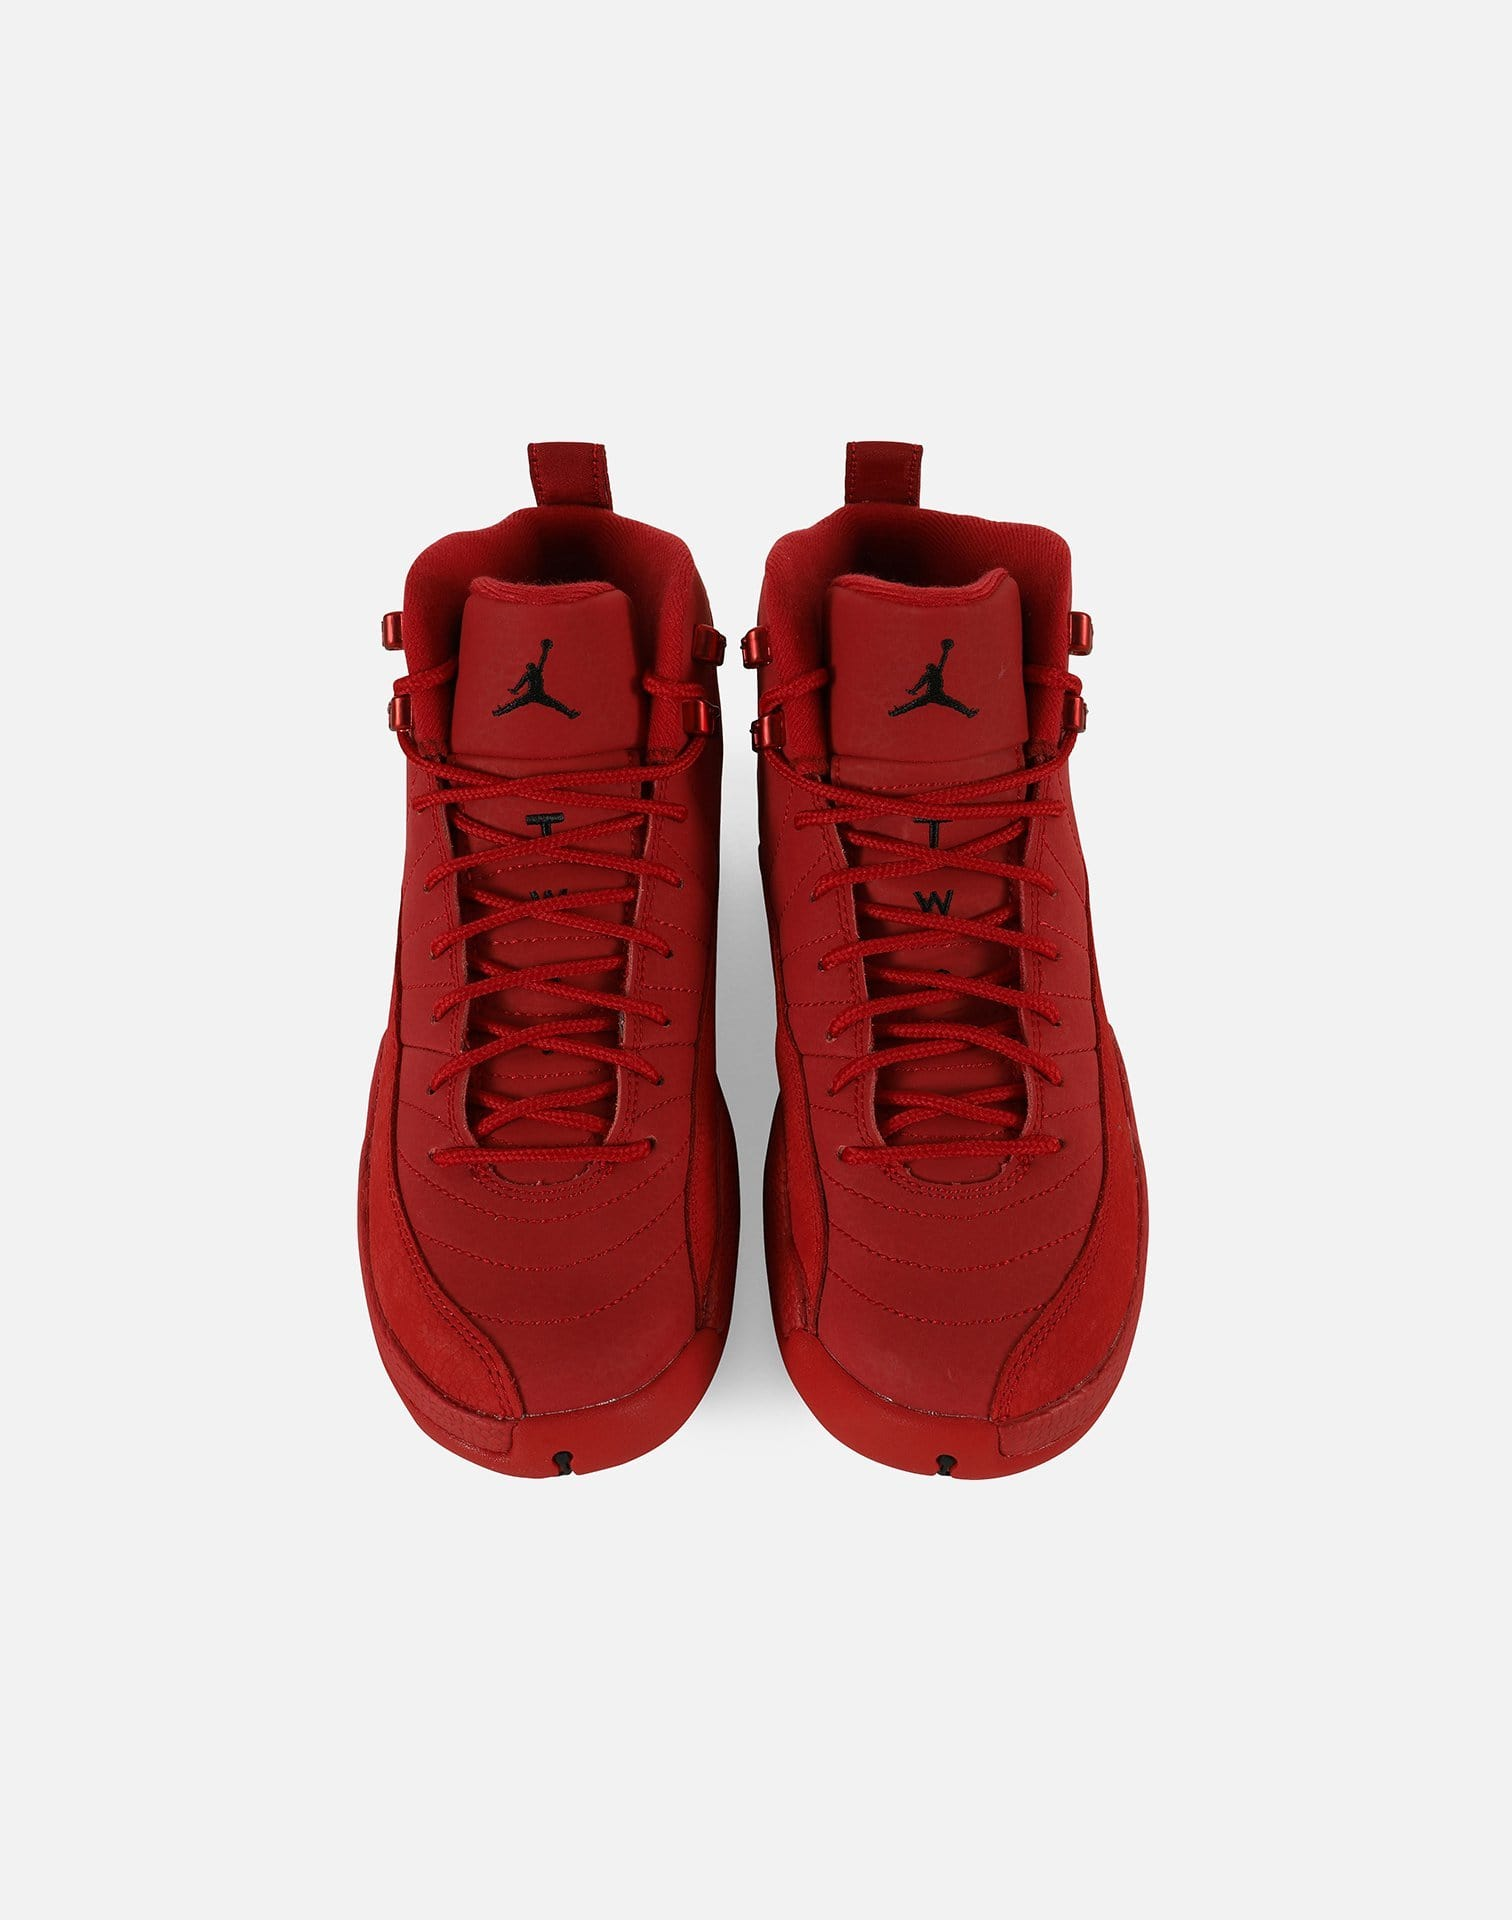 Jordan Air Jordan Retro 12 'Gym Red' Grade-School